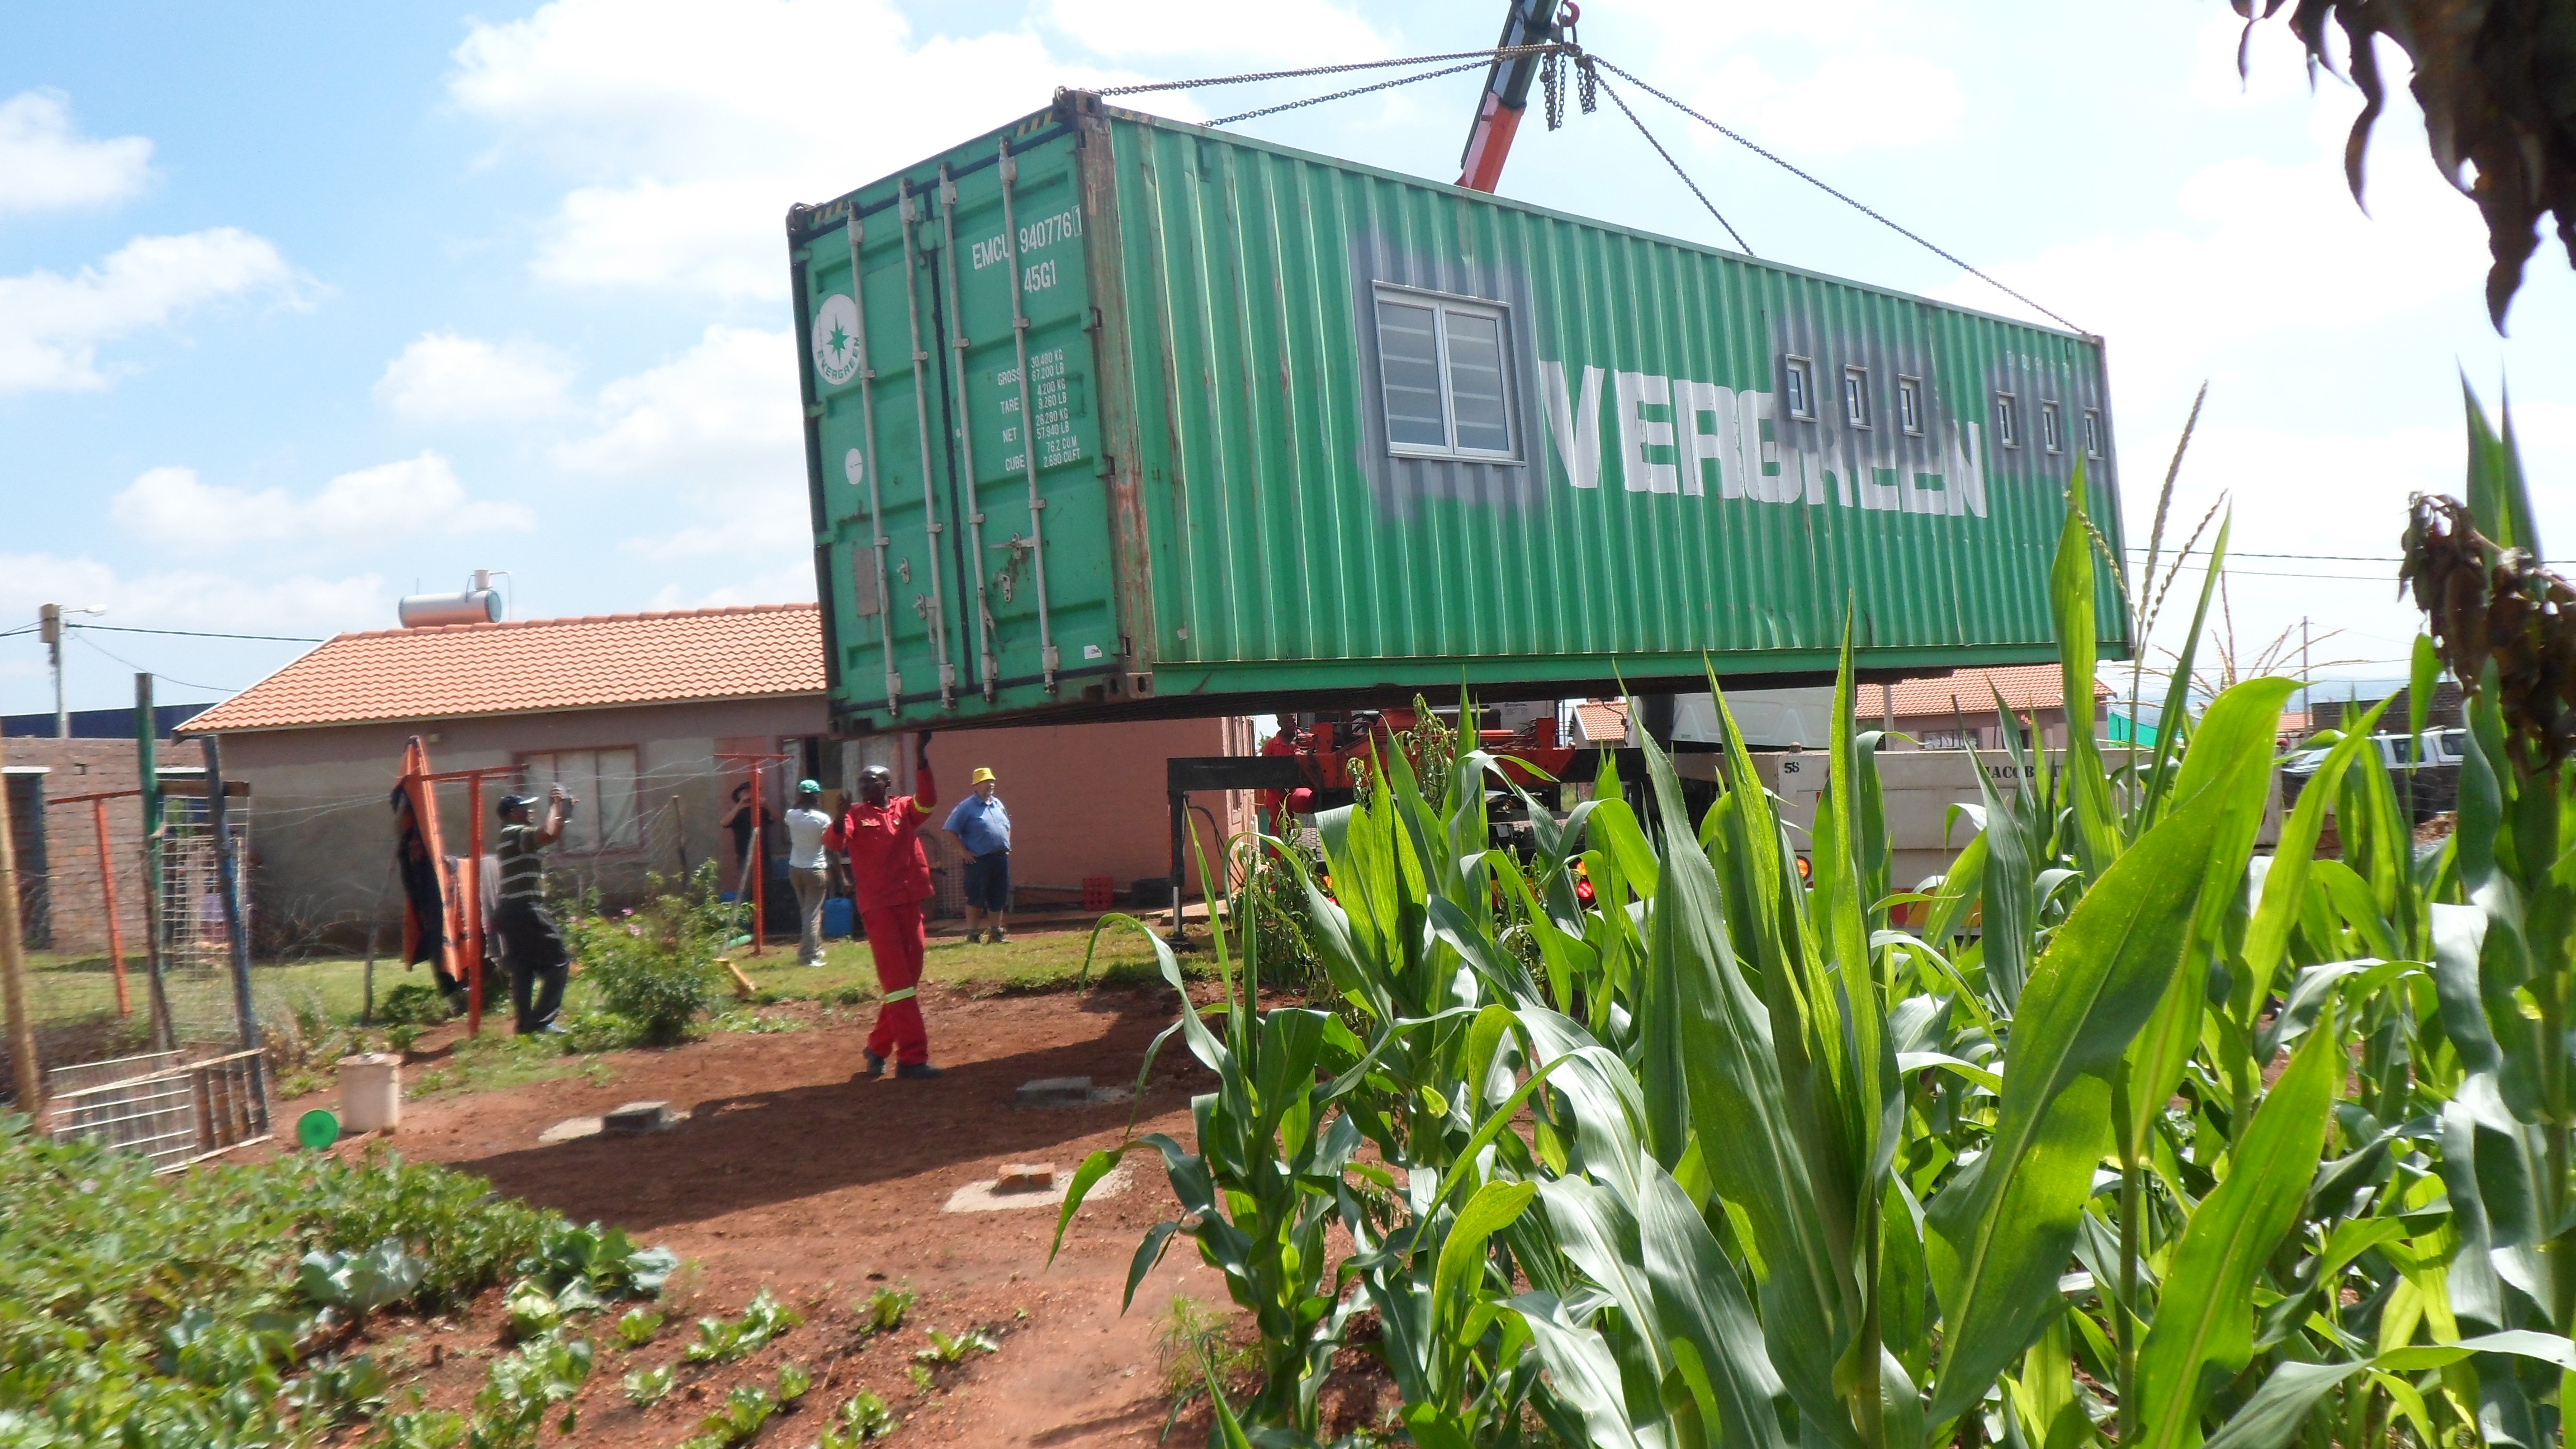 Container arriving